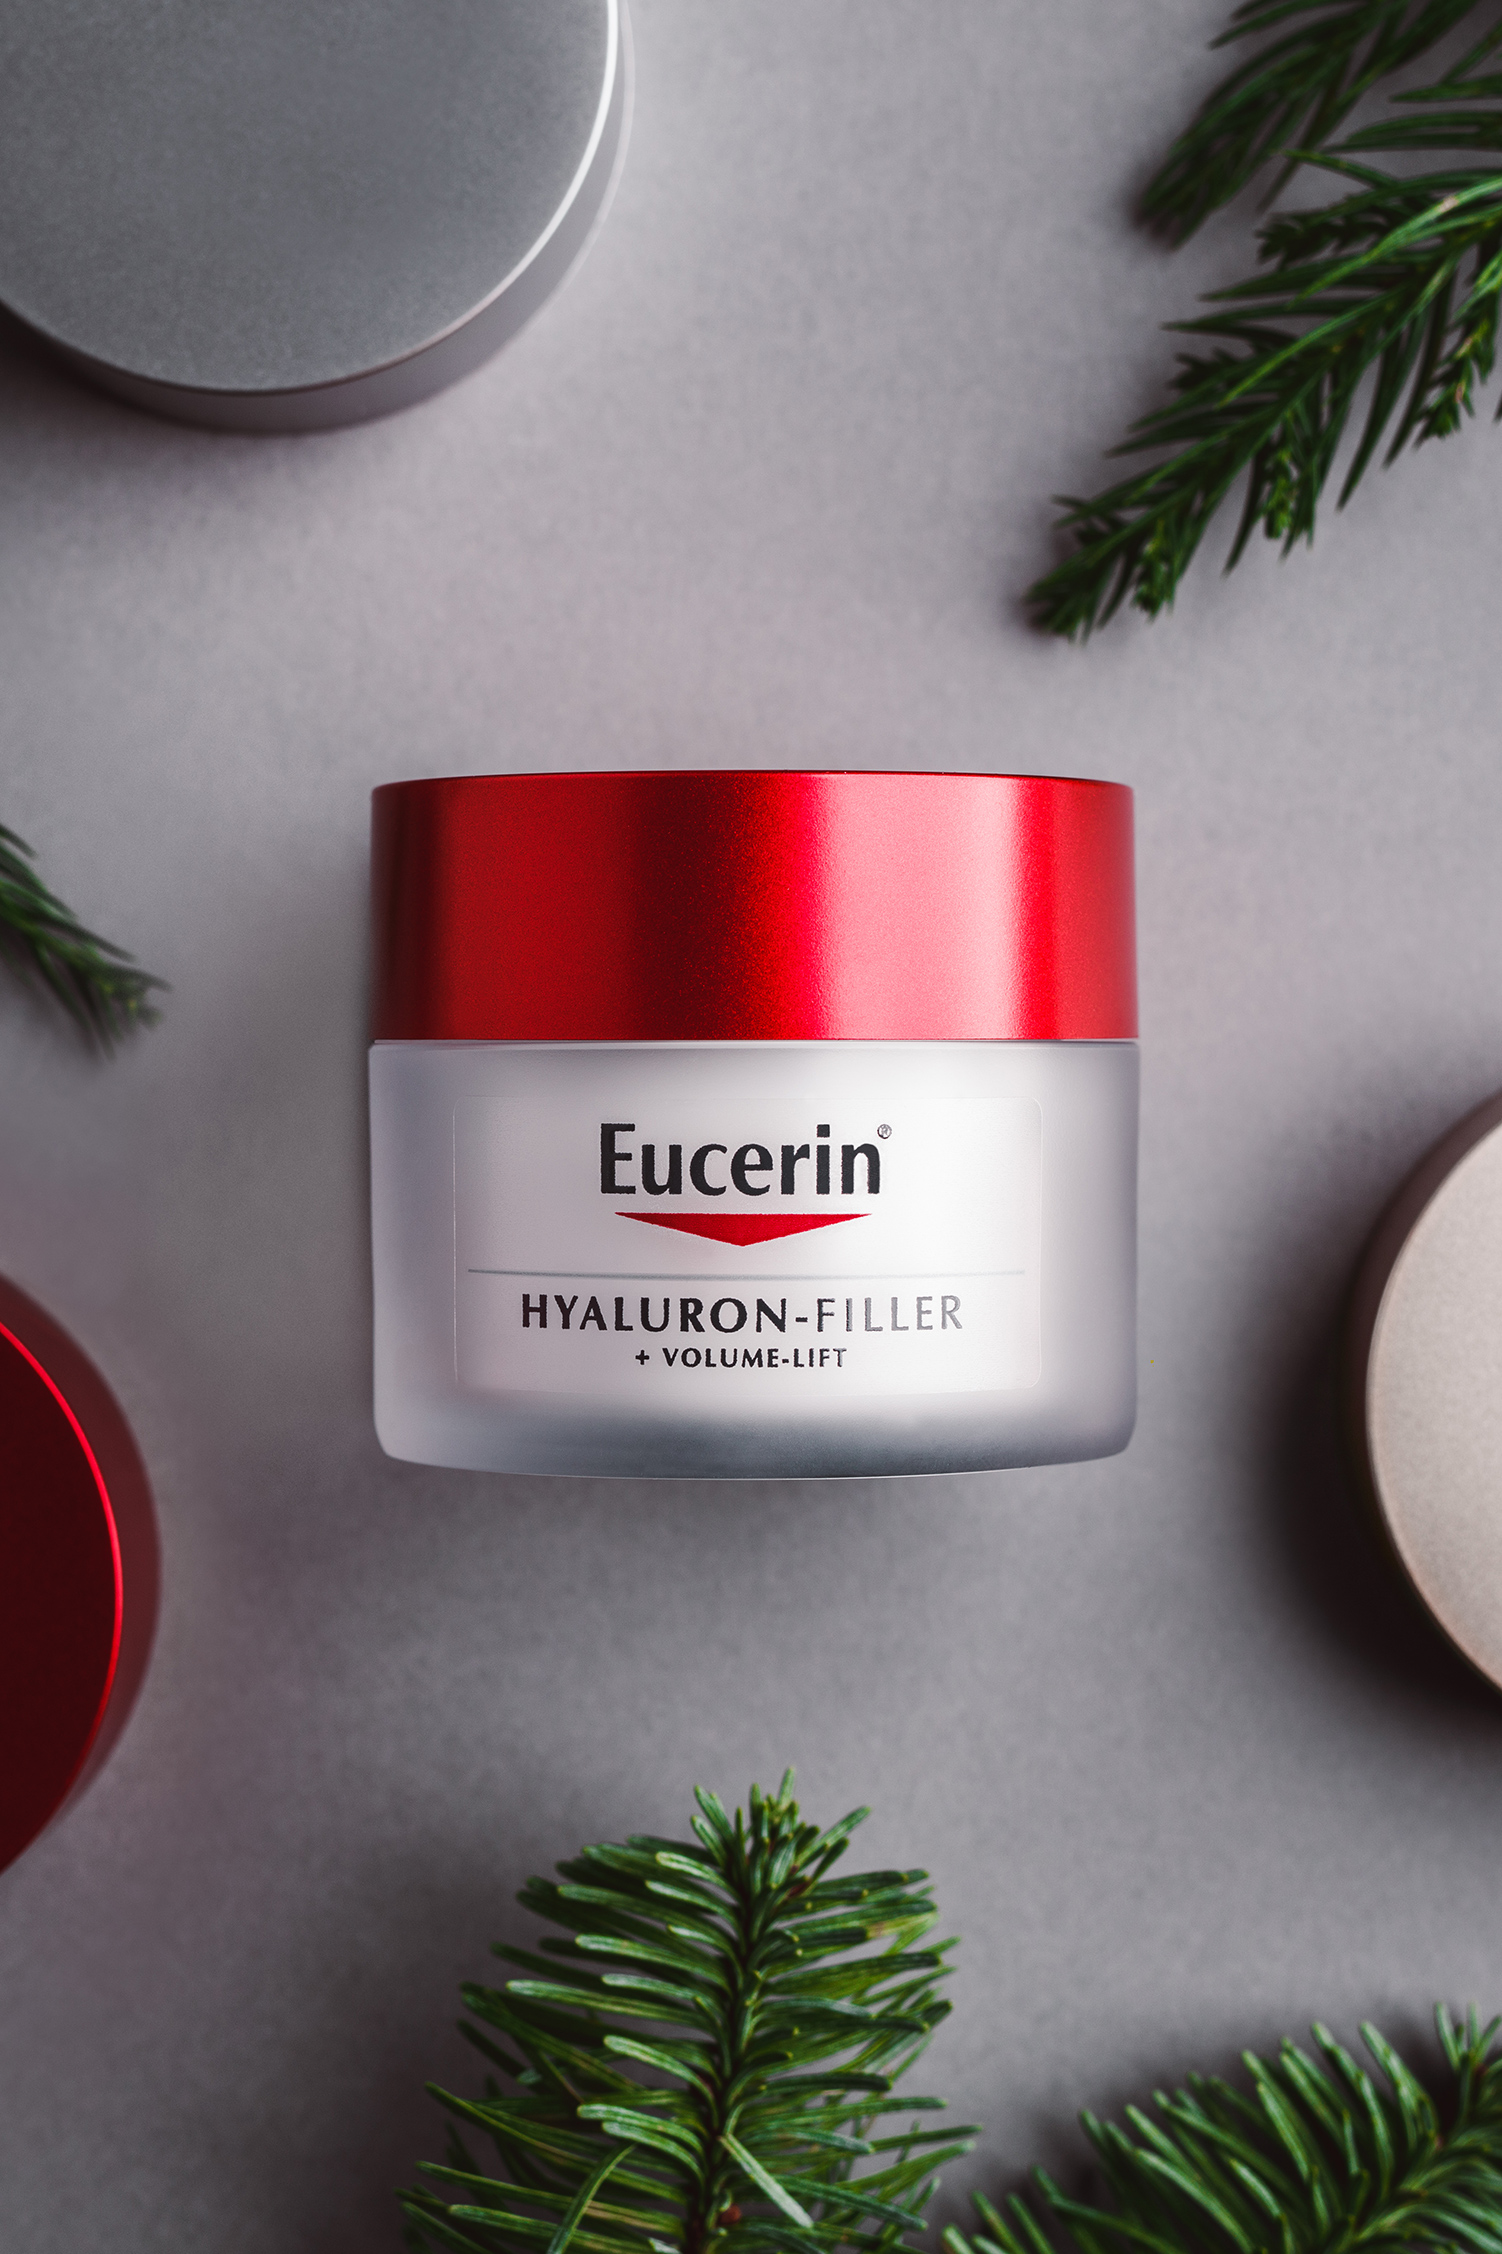 Eucerin - Photo by Leo Bülow